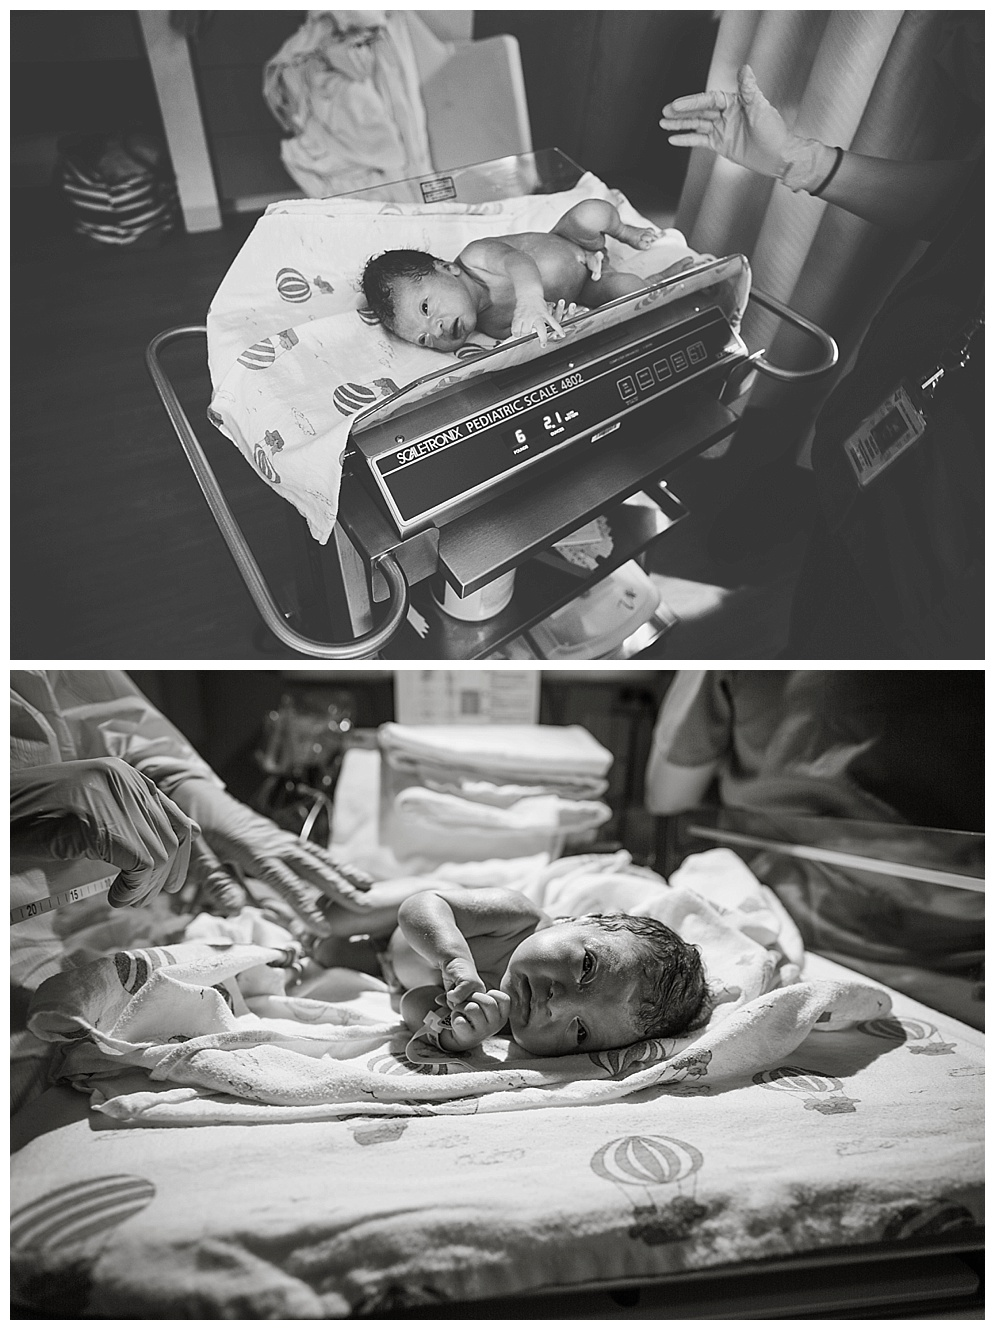 On Tuesday August 23rd at 8:51am we welcomed Bristol Sioux Schwab into the world. 37 weeks 2 days. 6lbs 2oz, 19inches. My husband took these photographs, and they will forever be his best work :)